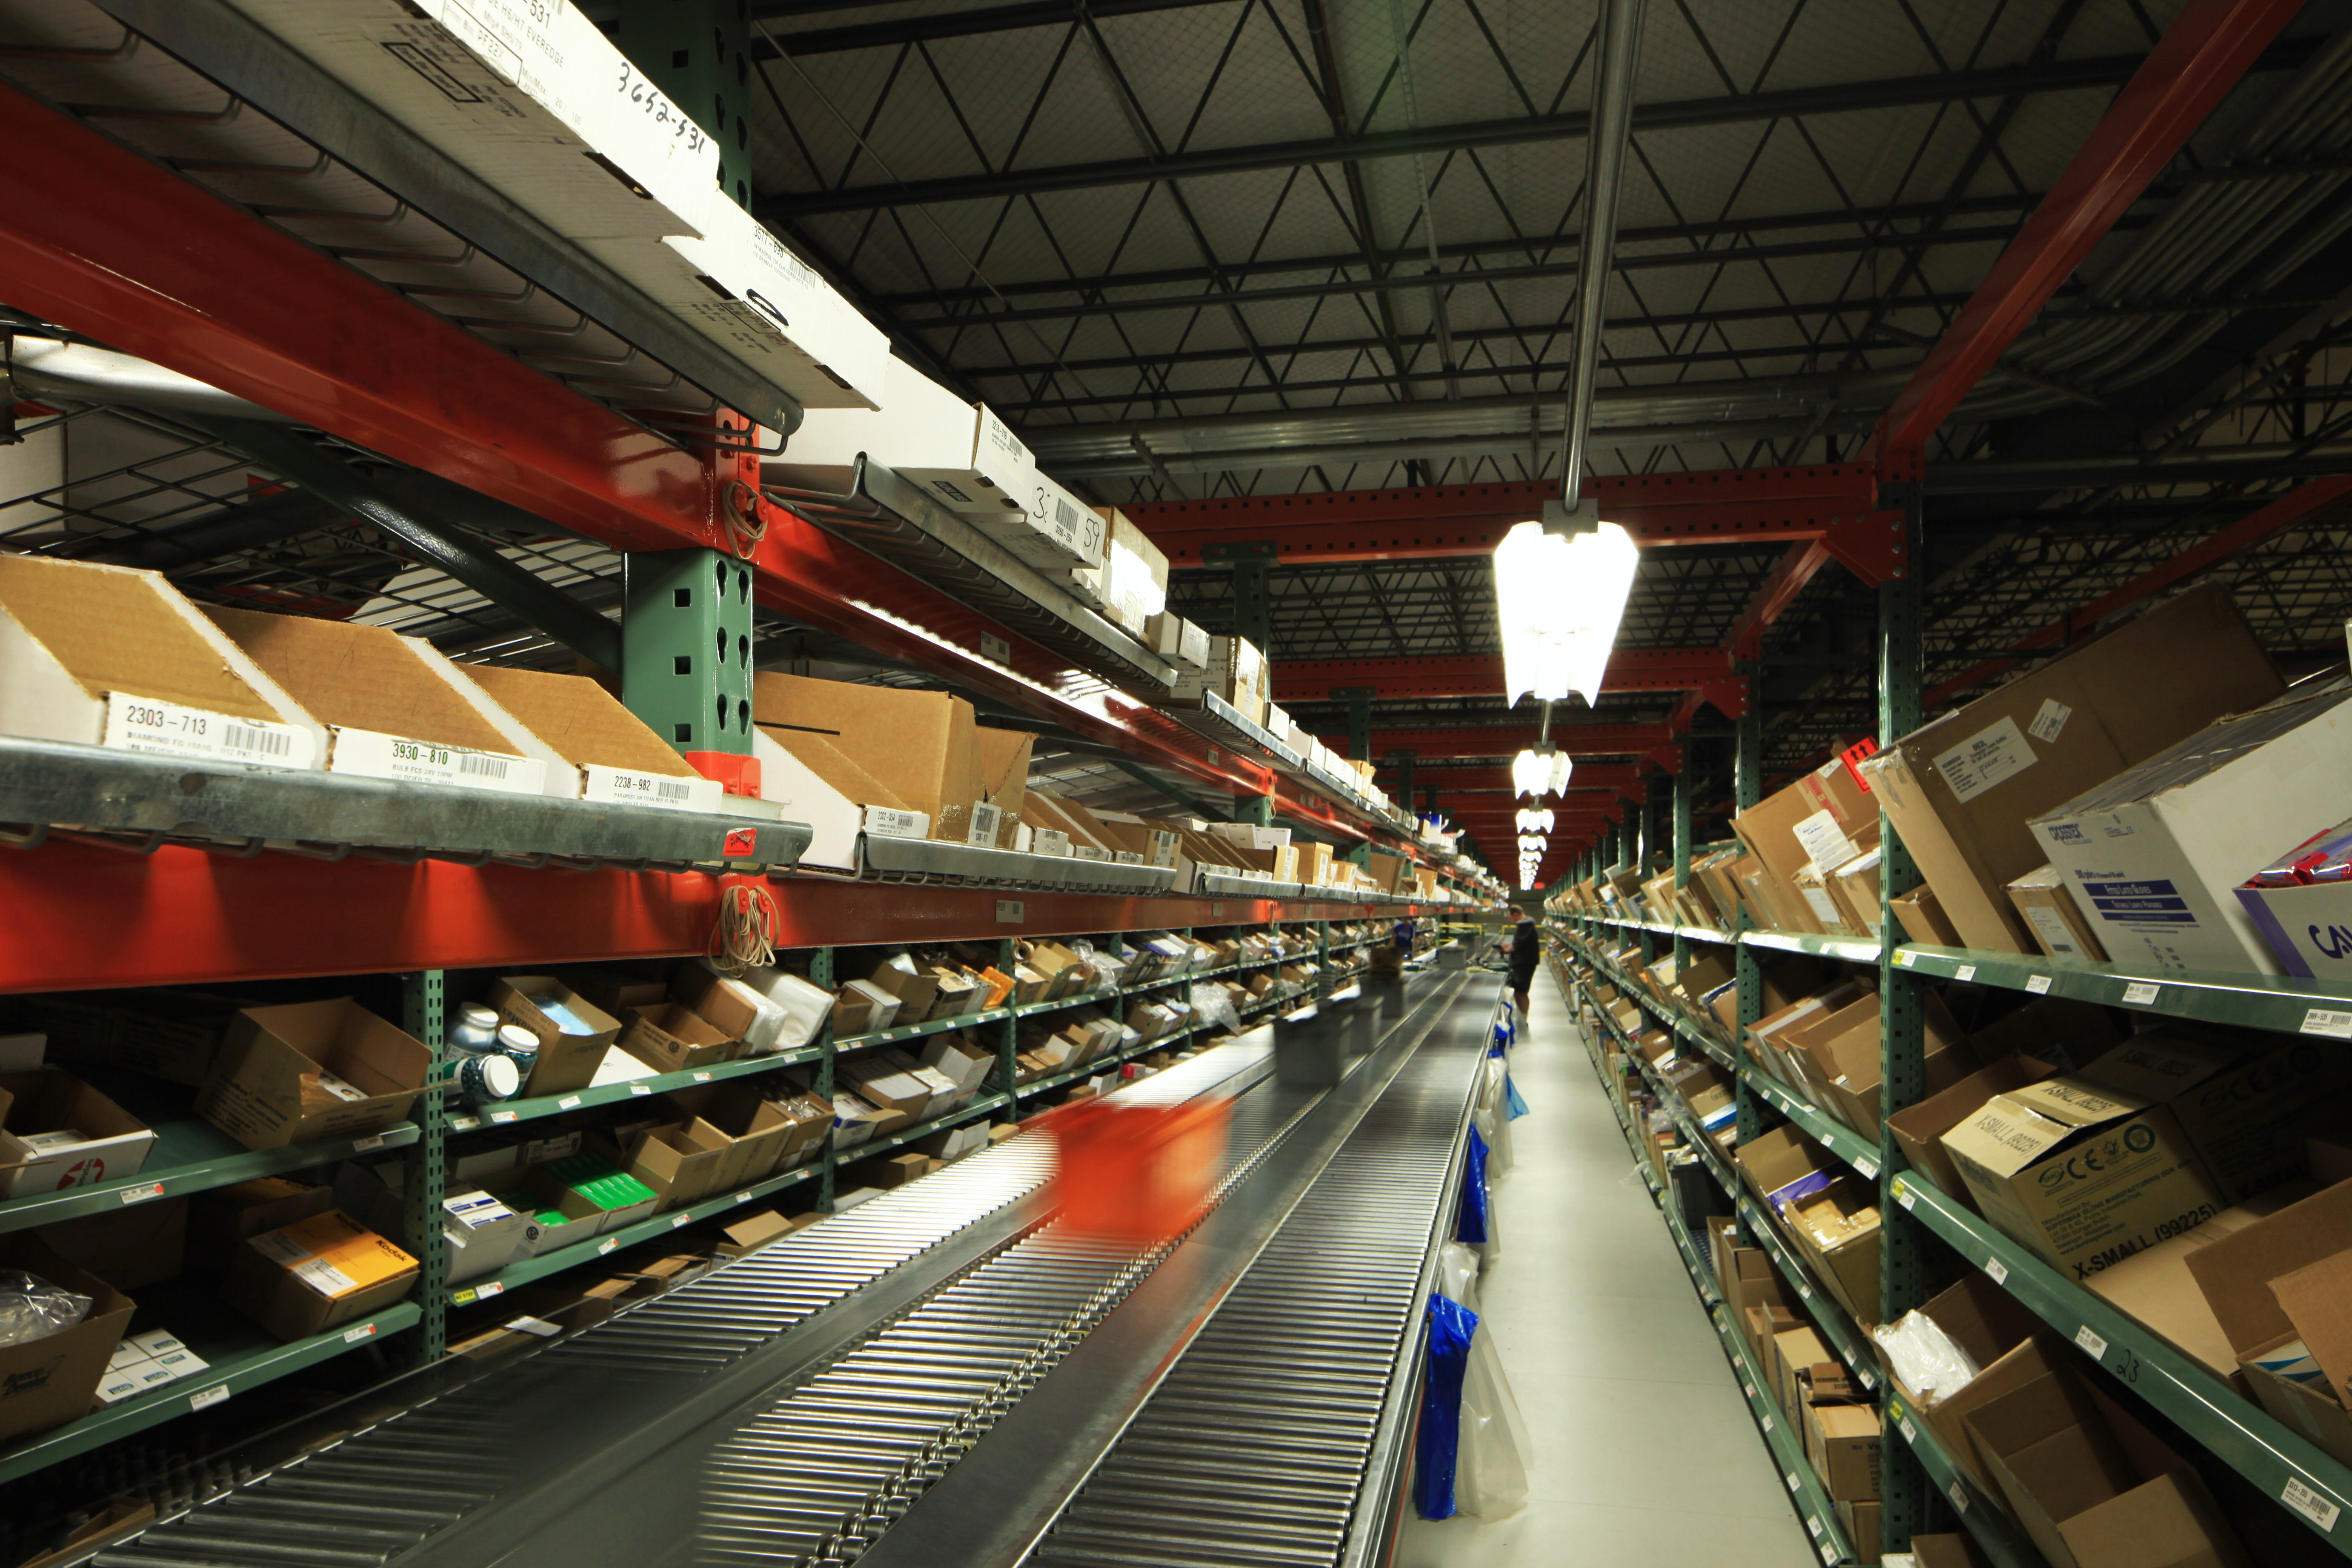 interlake carton flow shelving